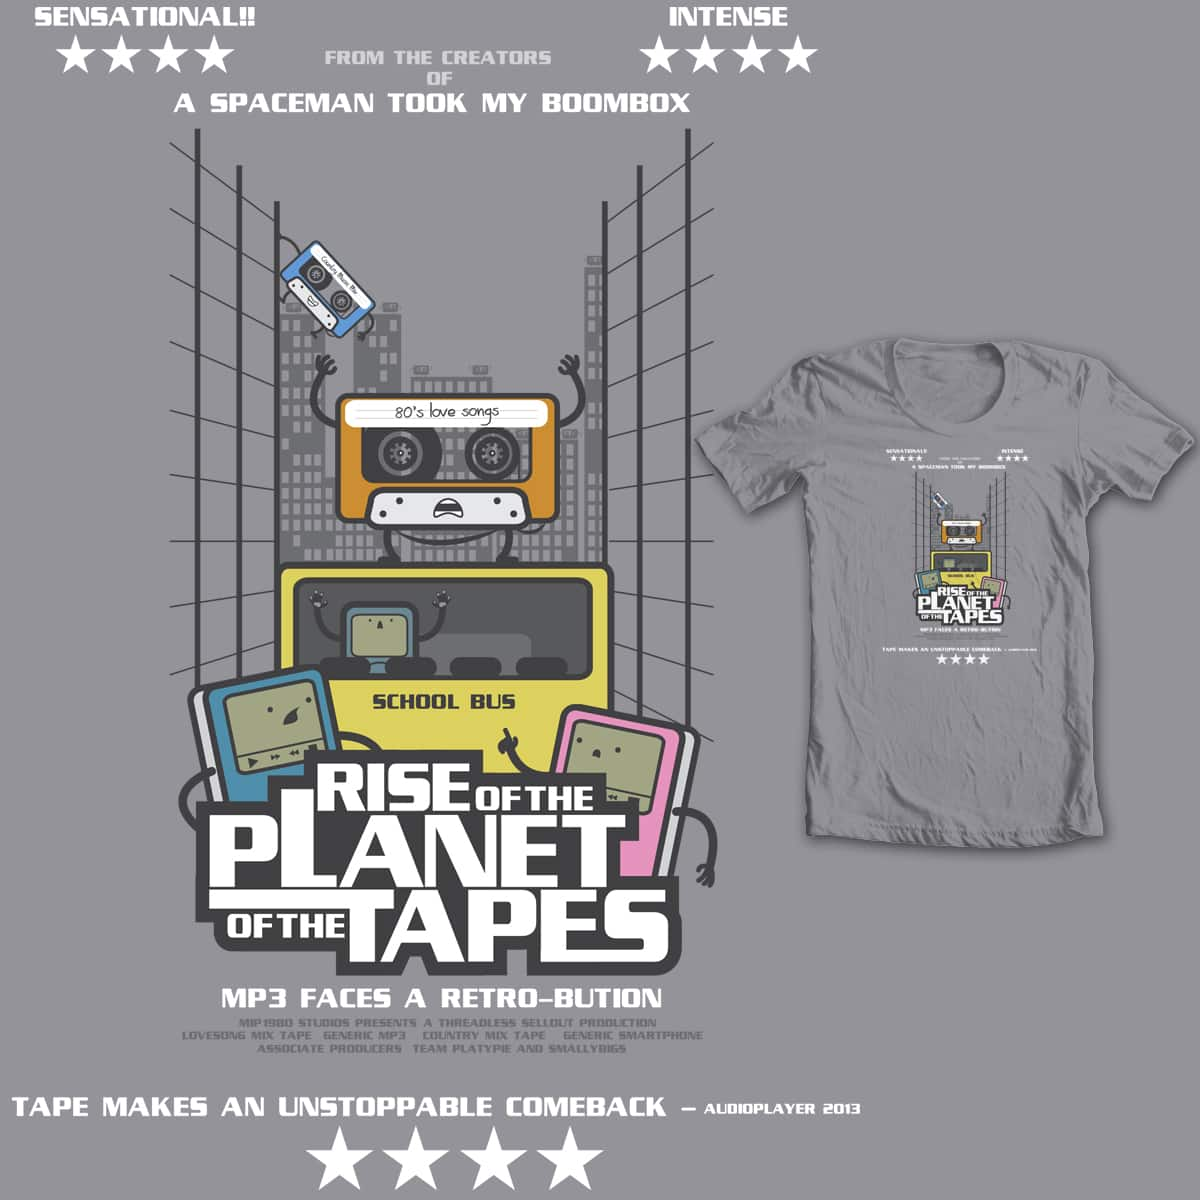 Rise of the planet of the tapes! by mip1980 on Threadless